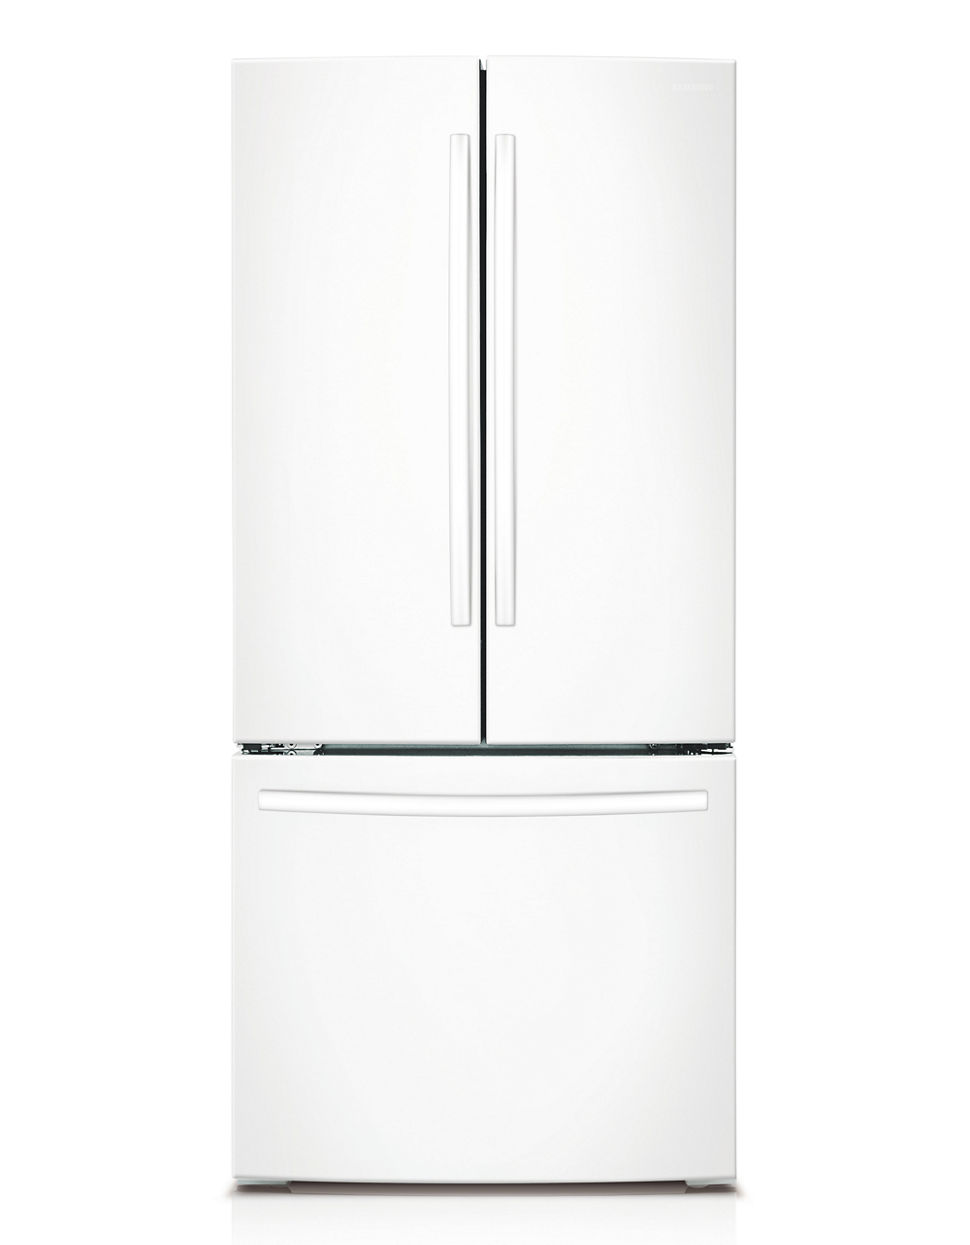 Rf220nctawwaa 216 Cu Ft French Door Refrigerator White